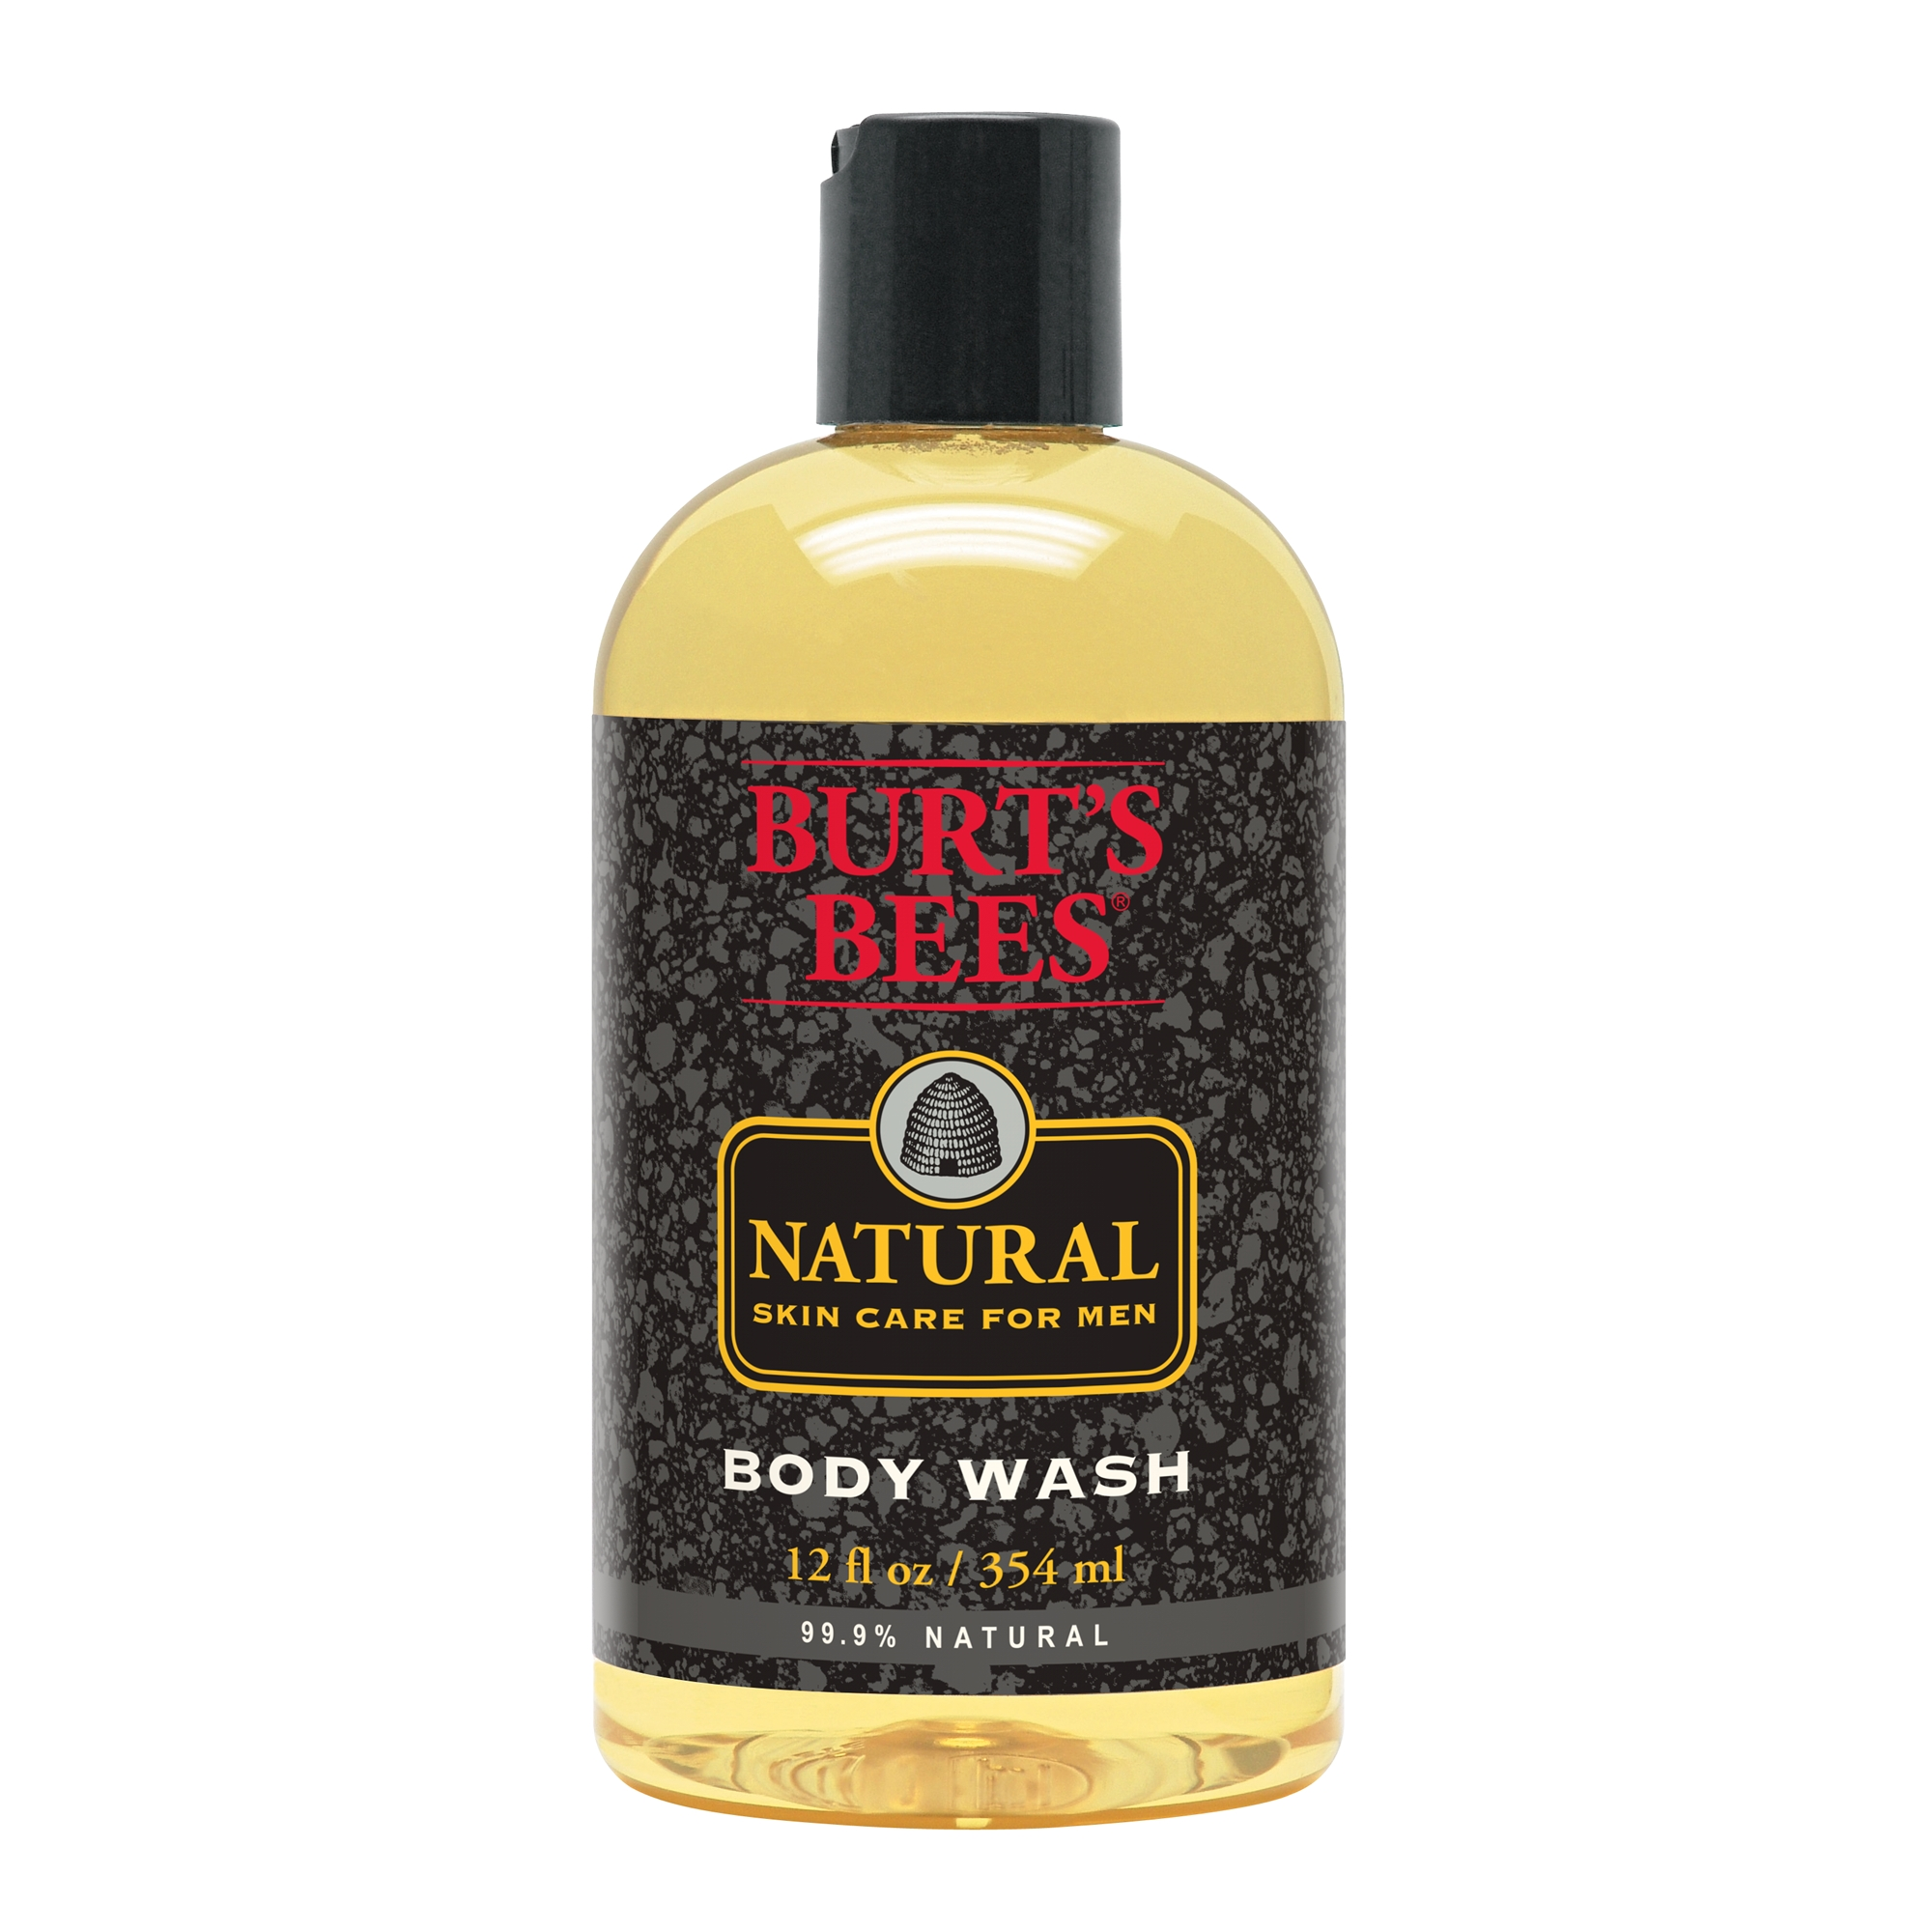 Burt's Bees Natural Skin Care for Men Body Wash, 12 oz